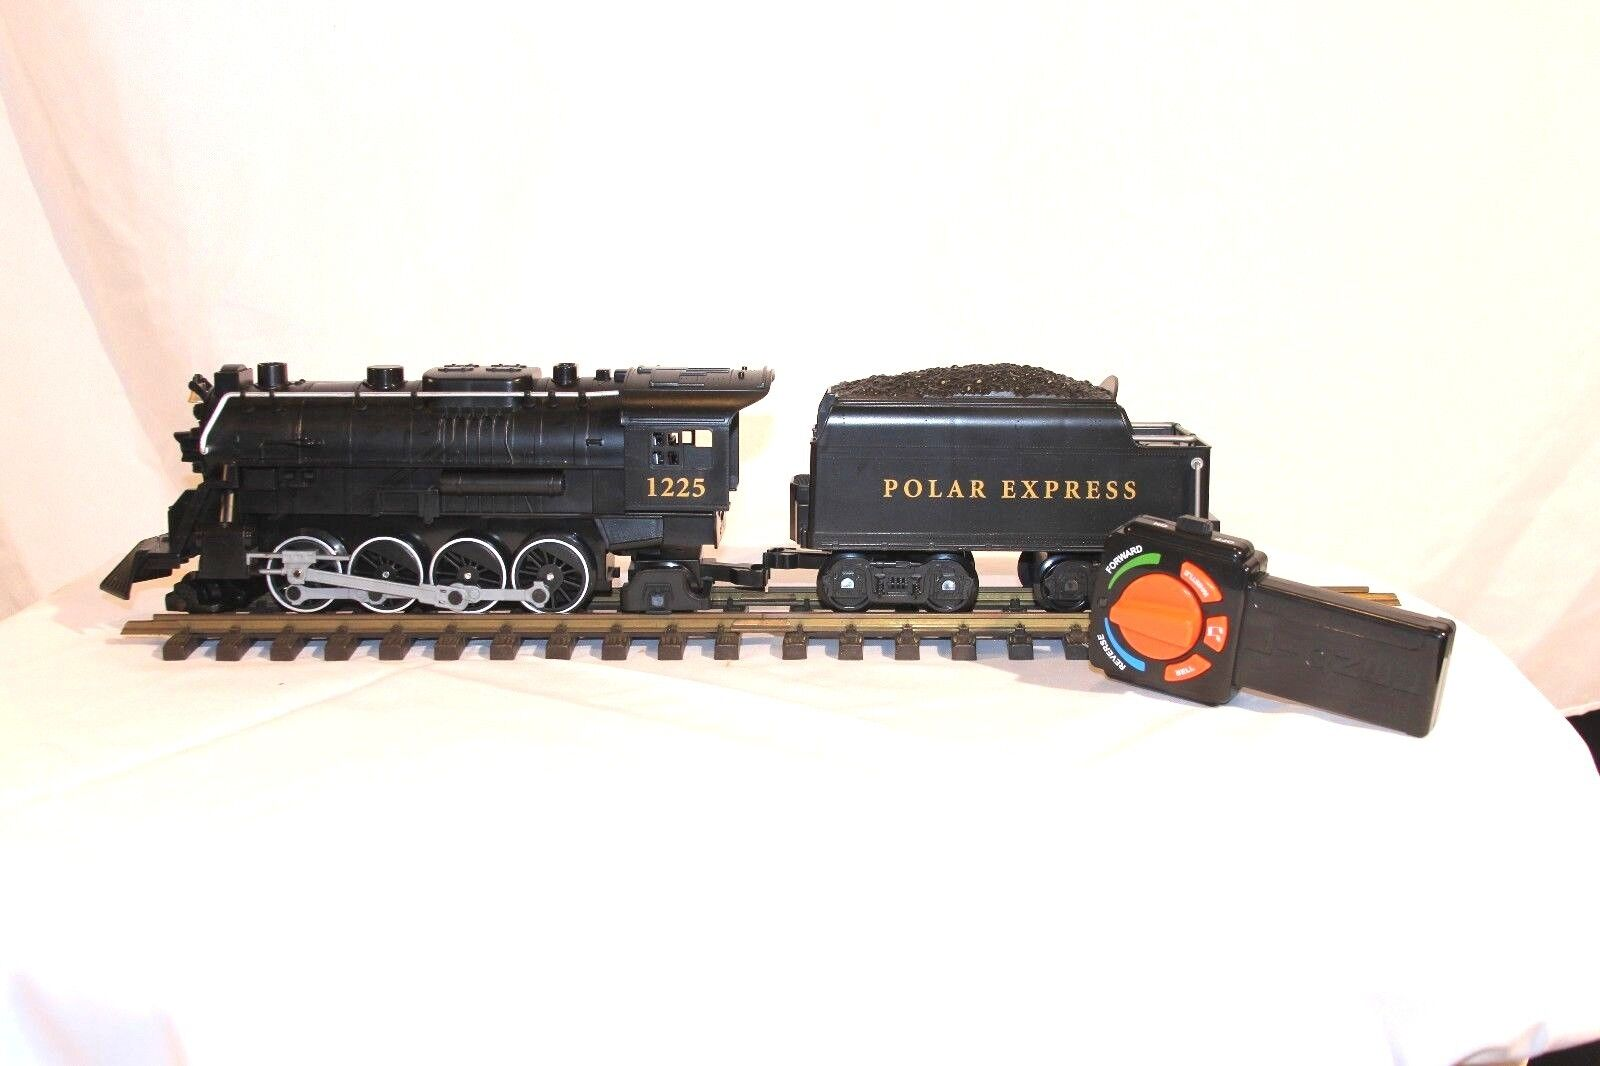 Lionel Polar Express Locomotive & Tender & Remote Ready to Play 7-11824